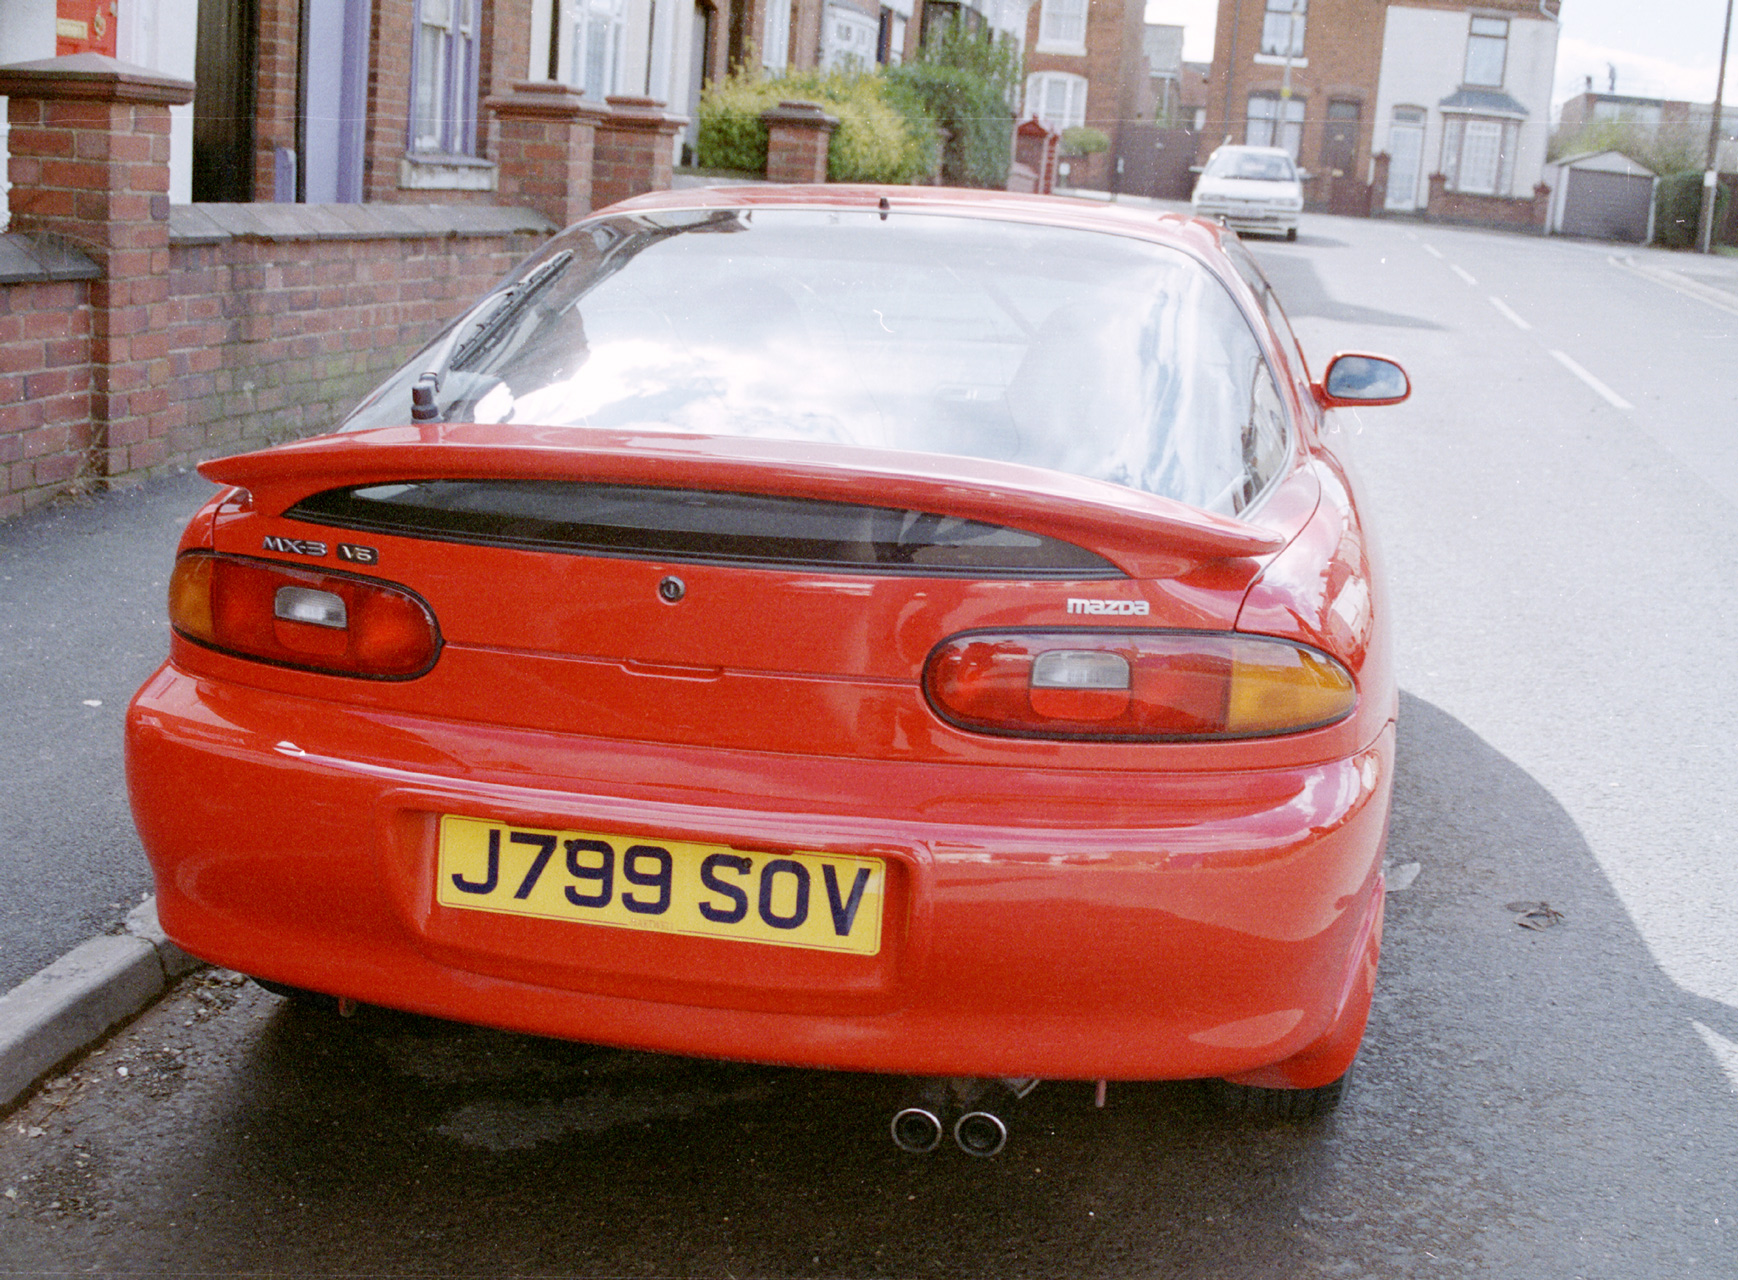 Mazda MX-3 V6 1991 Model | Flickr - Photo Sharing!